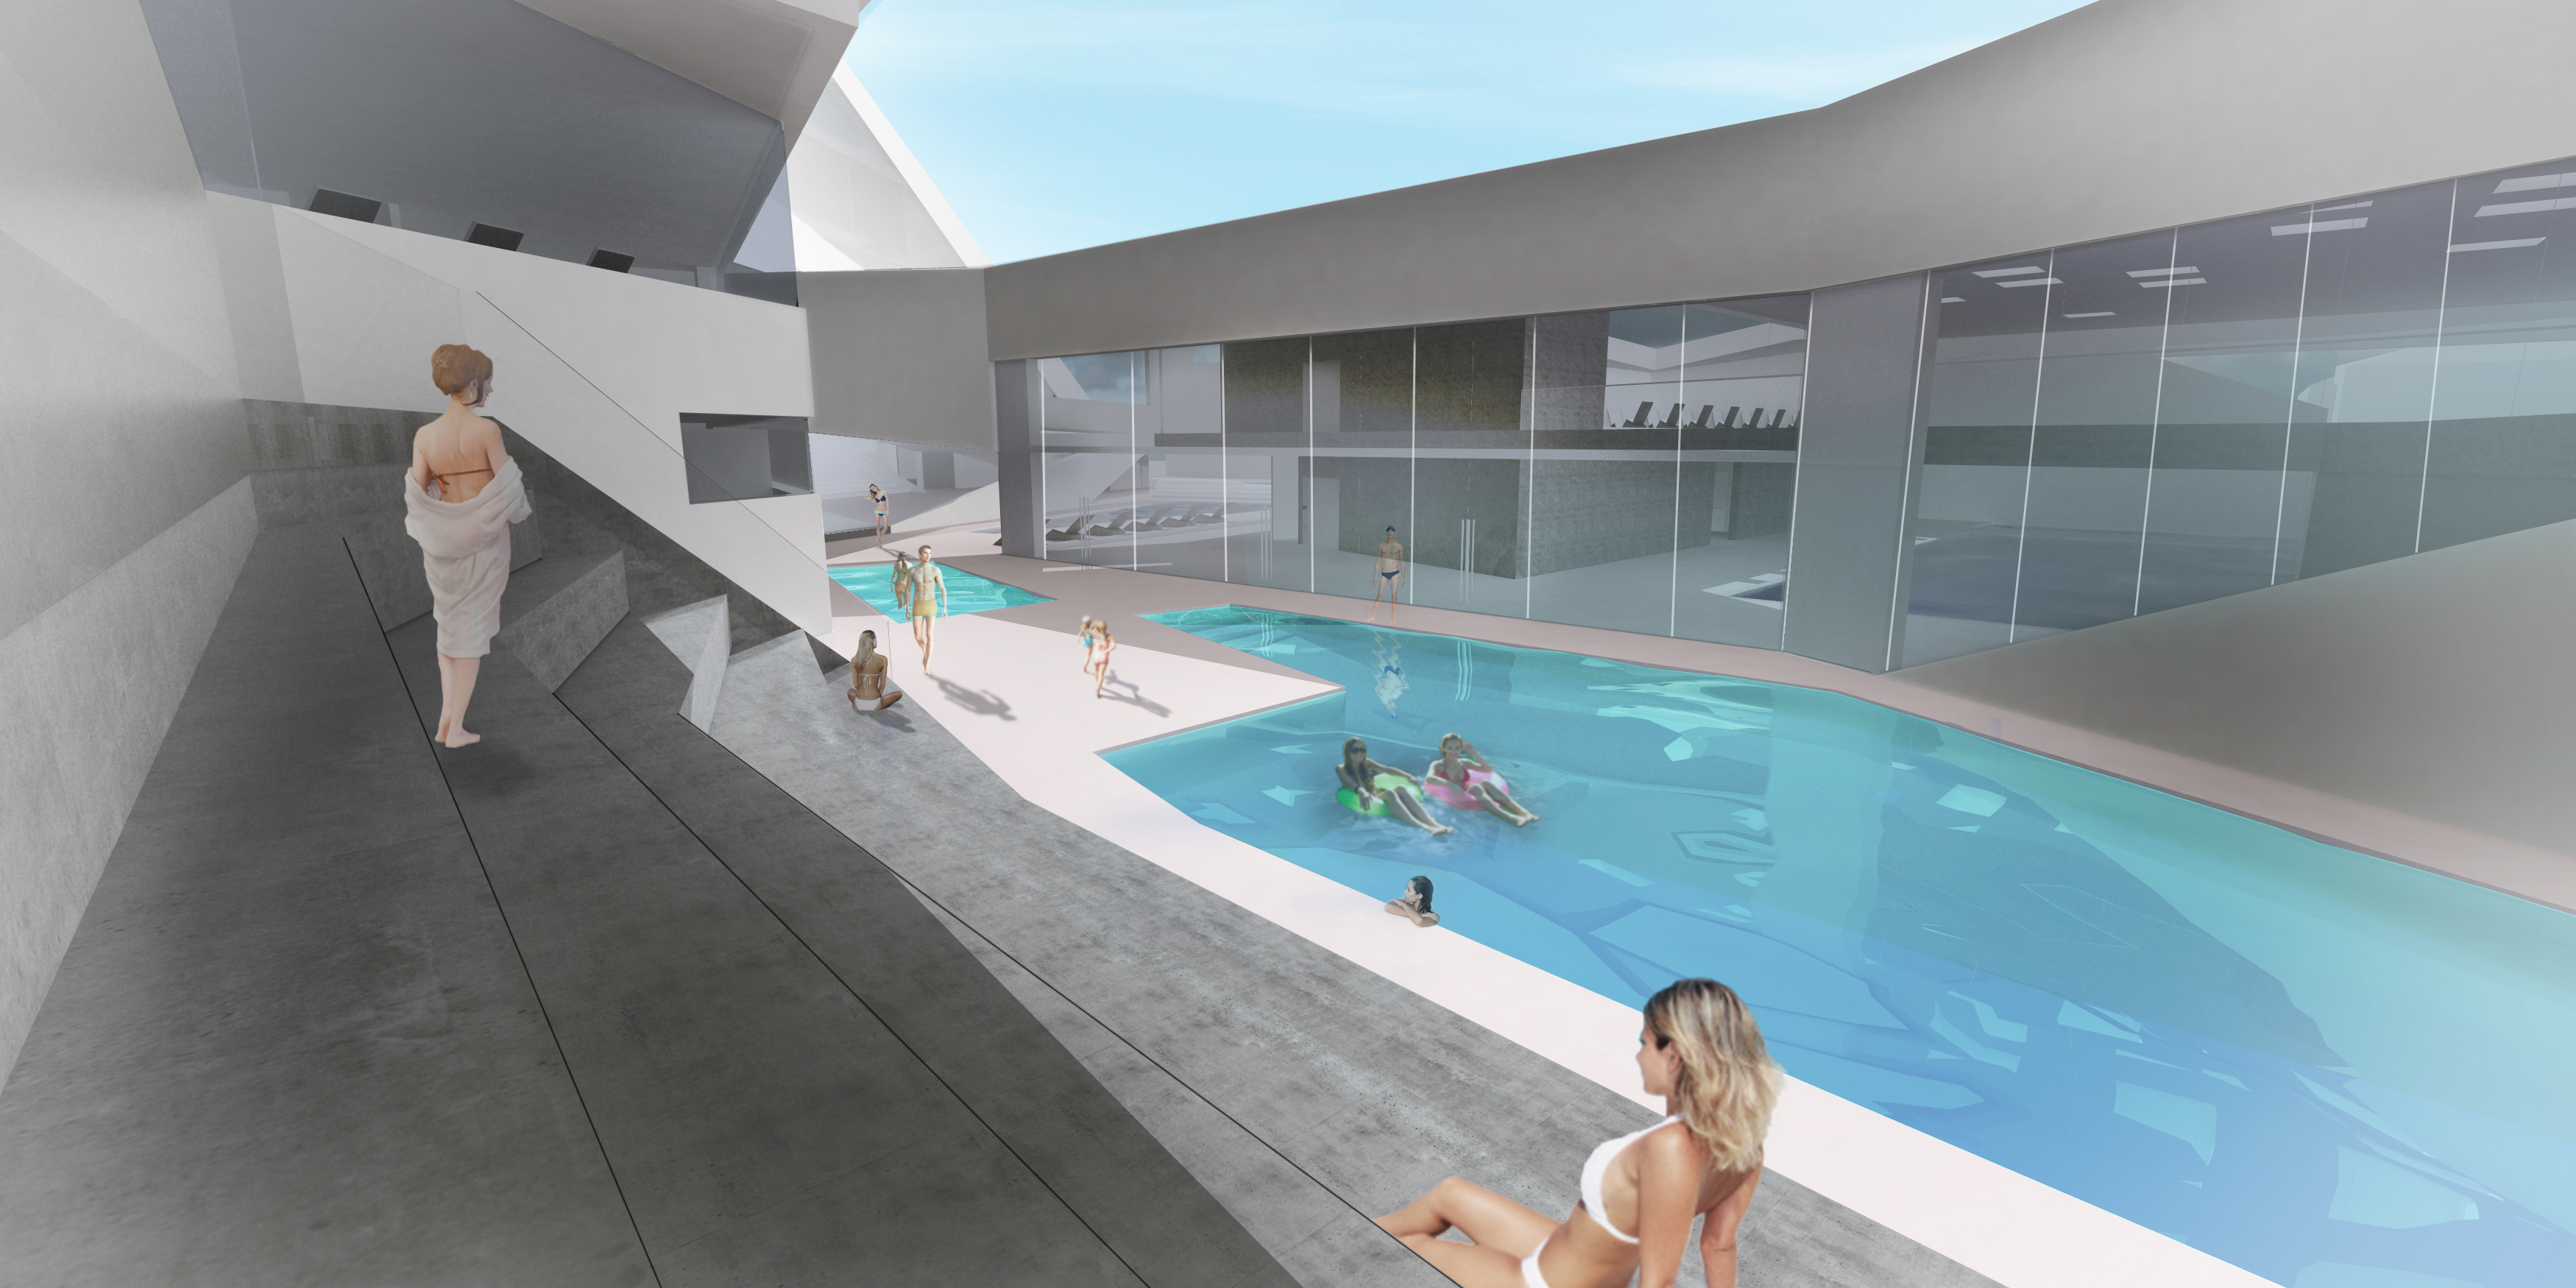 Bywater aquatic center courtyard pools glass edit